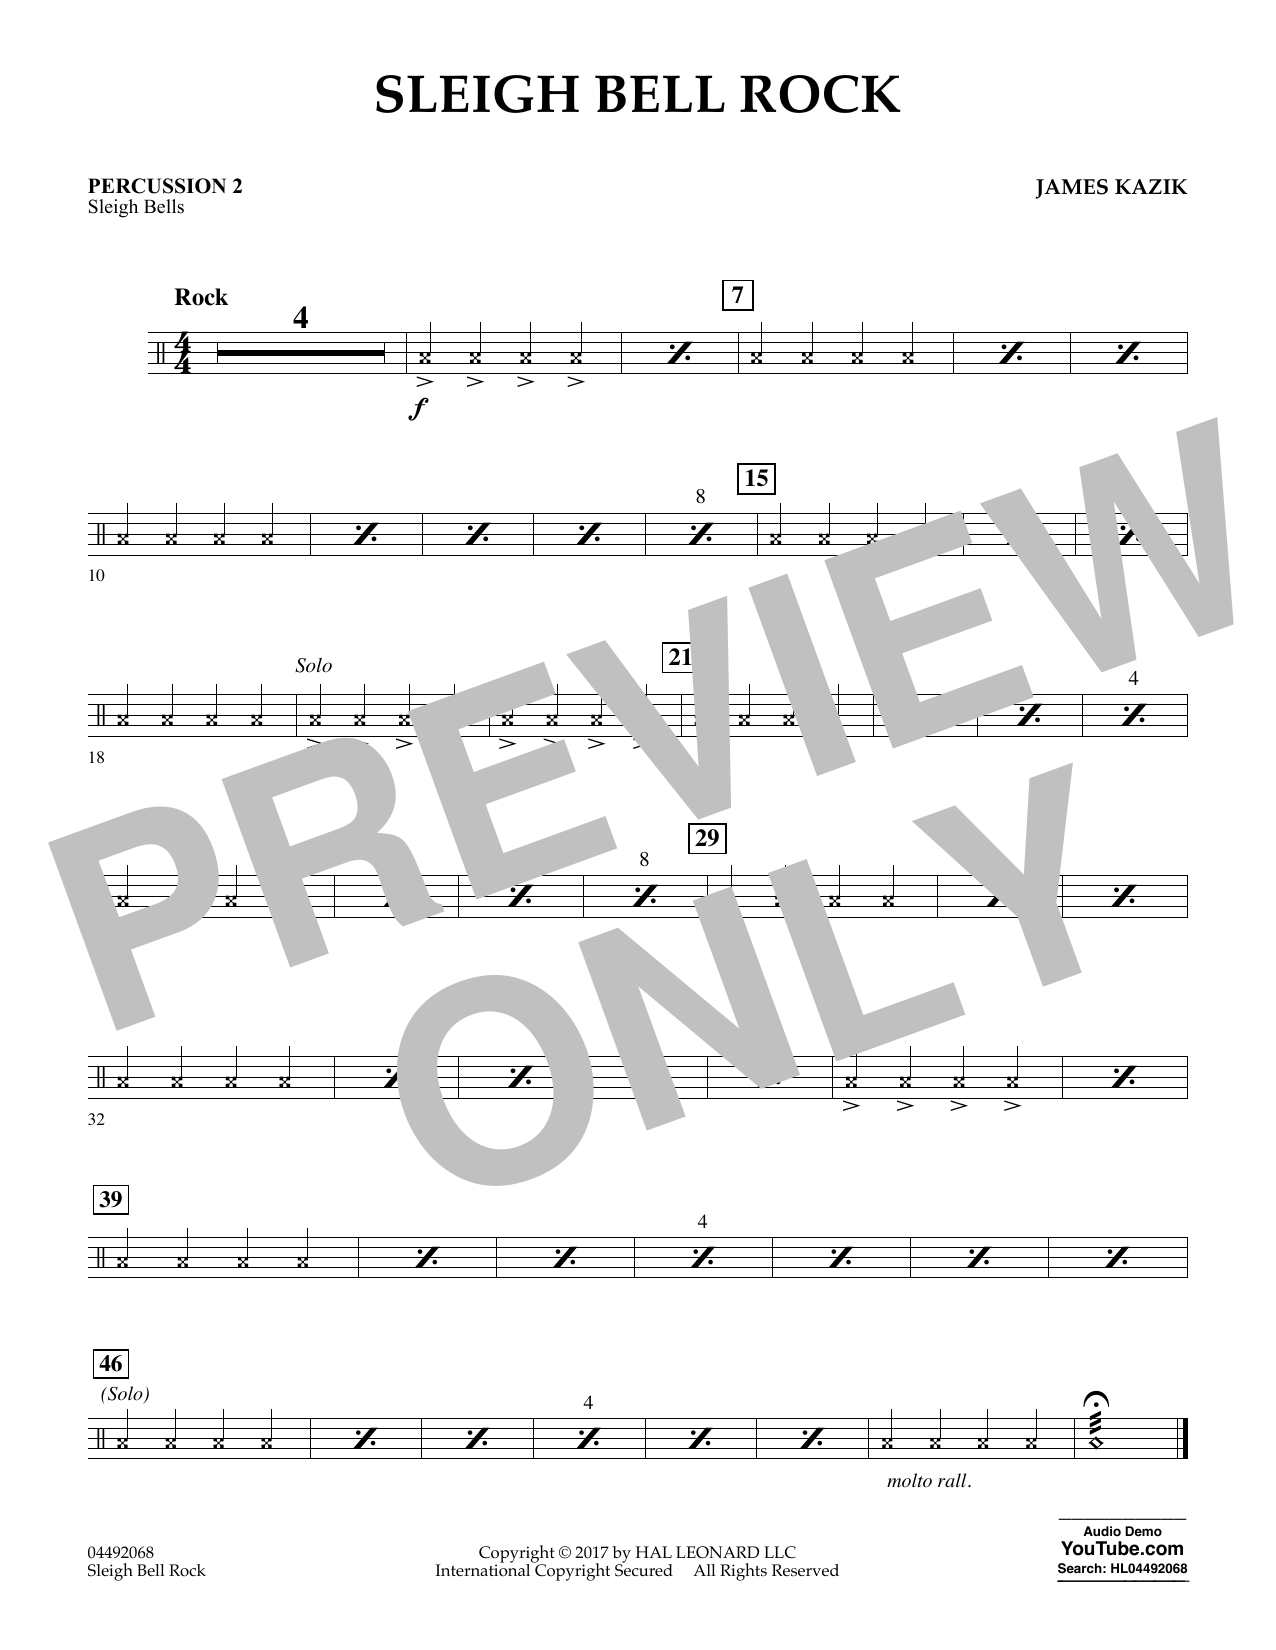 James Kazik Sleigh Bell Rock - Percussion 2 sheet music notes and chords. Download Printable PDF.